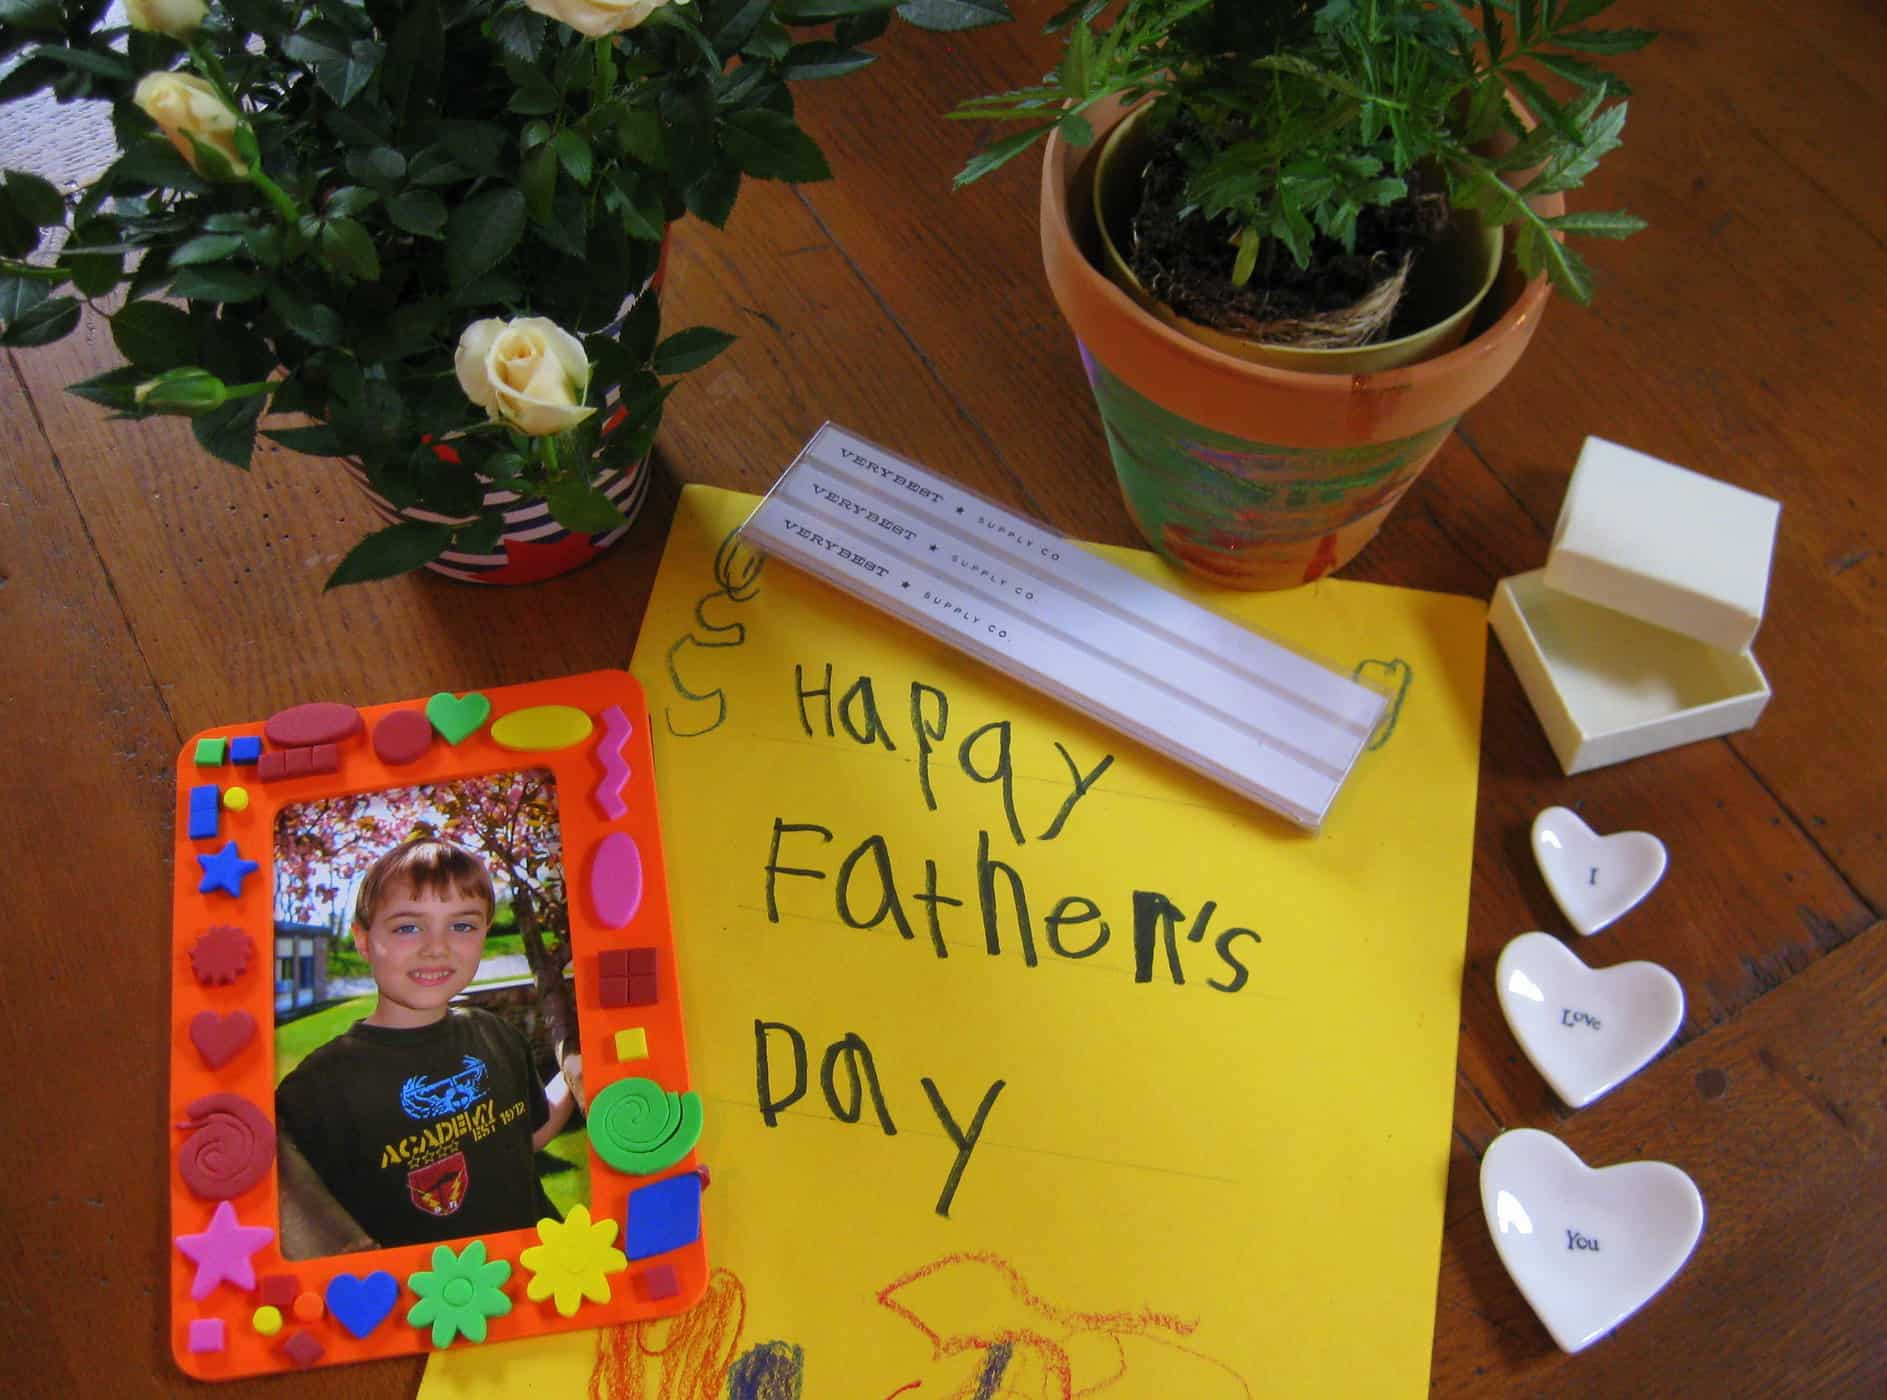 Last-Minute Gifts for a Happy Father's Day